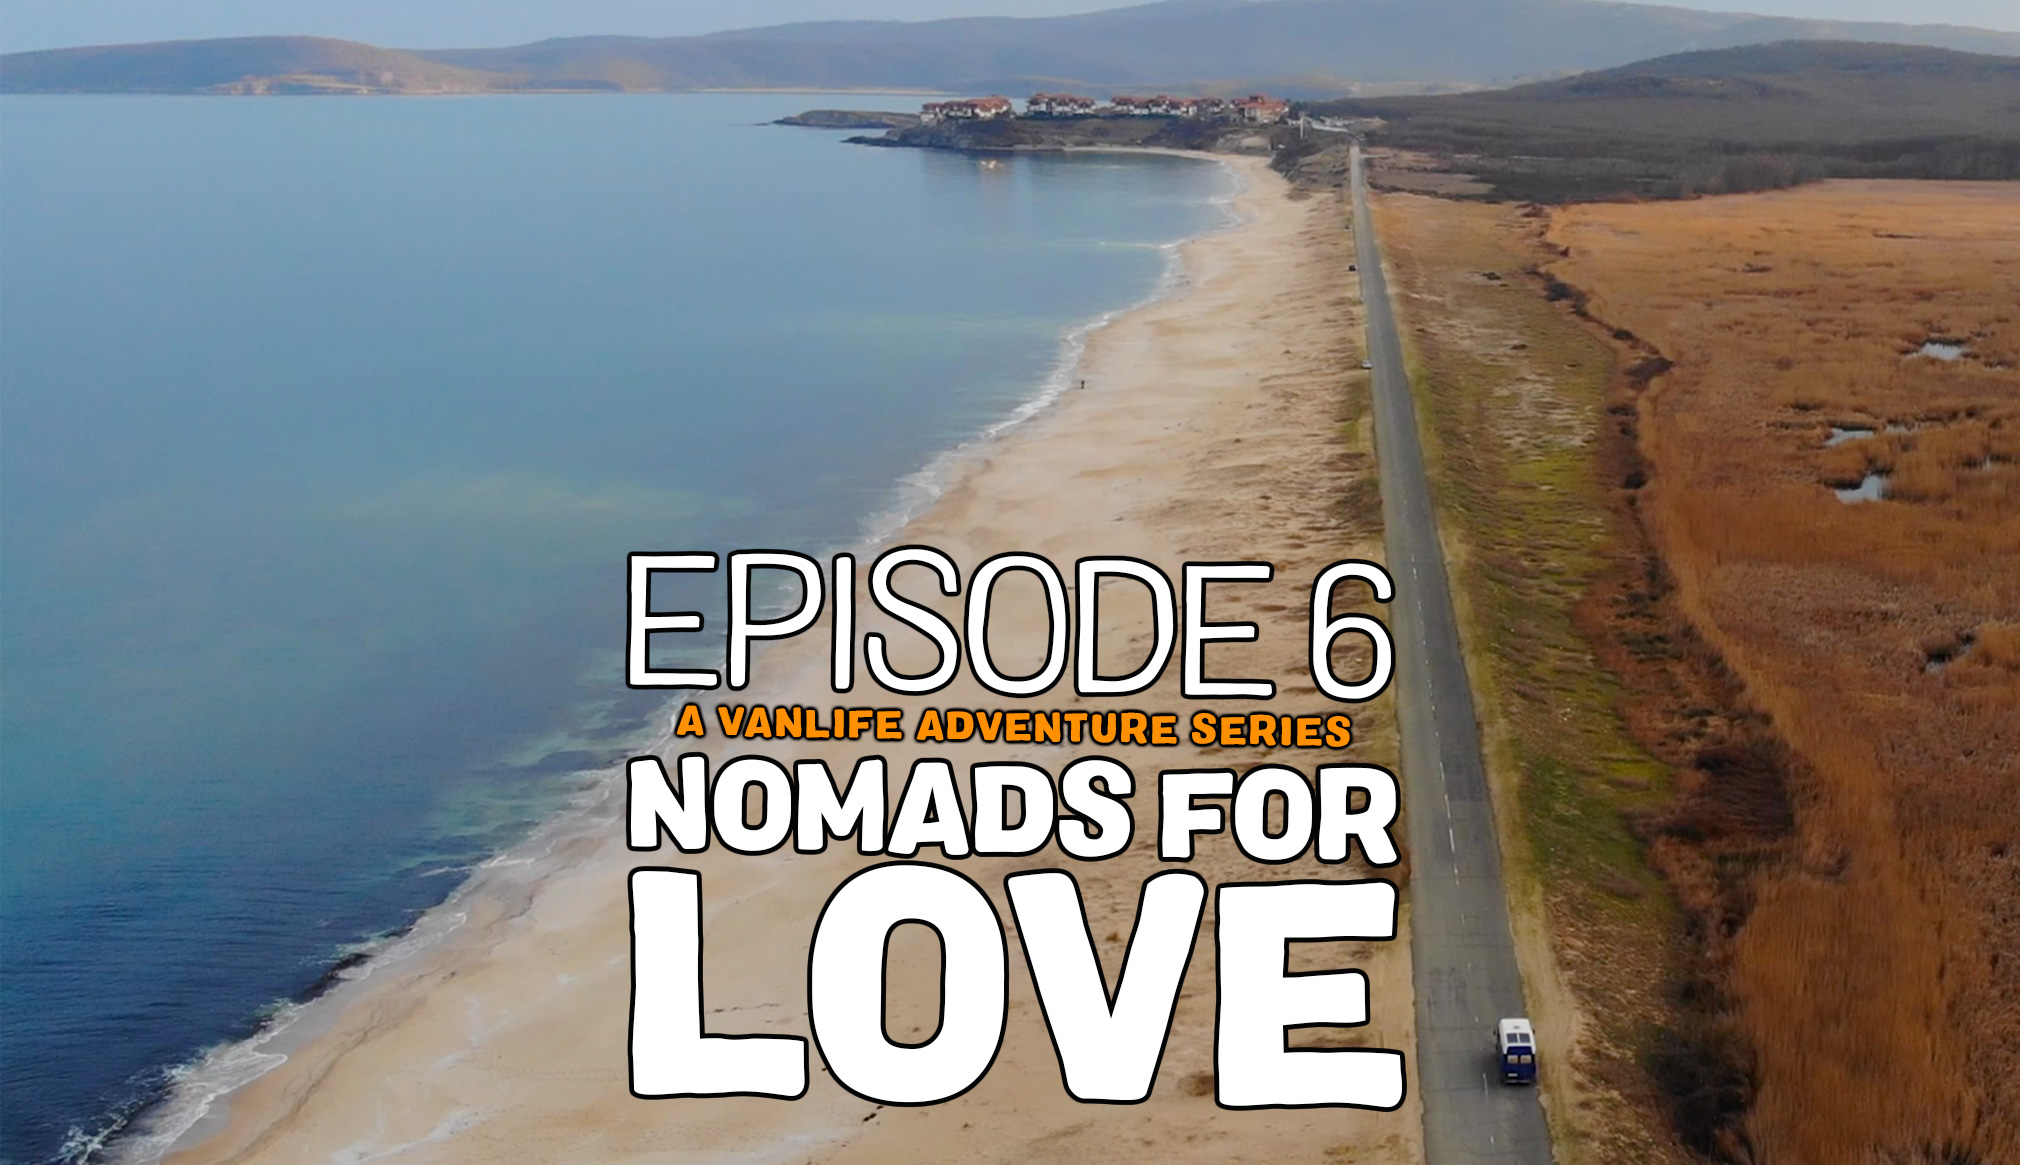 Nomads for love – episode 6